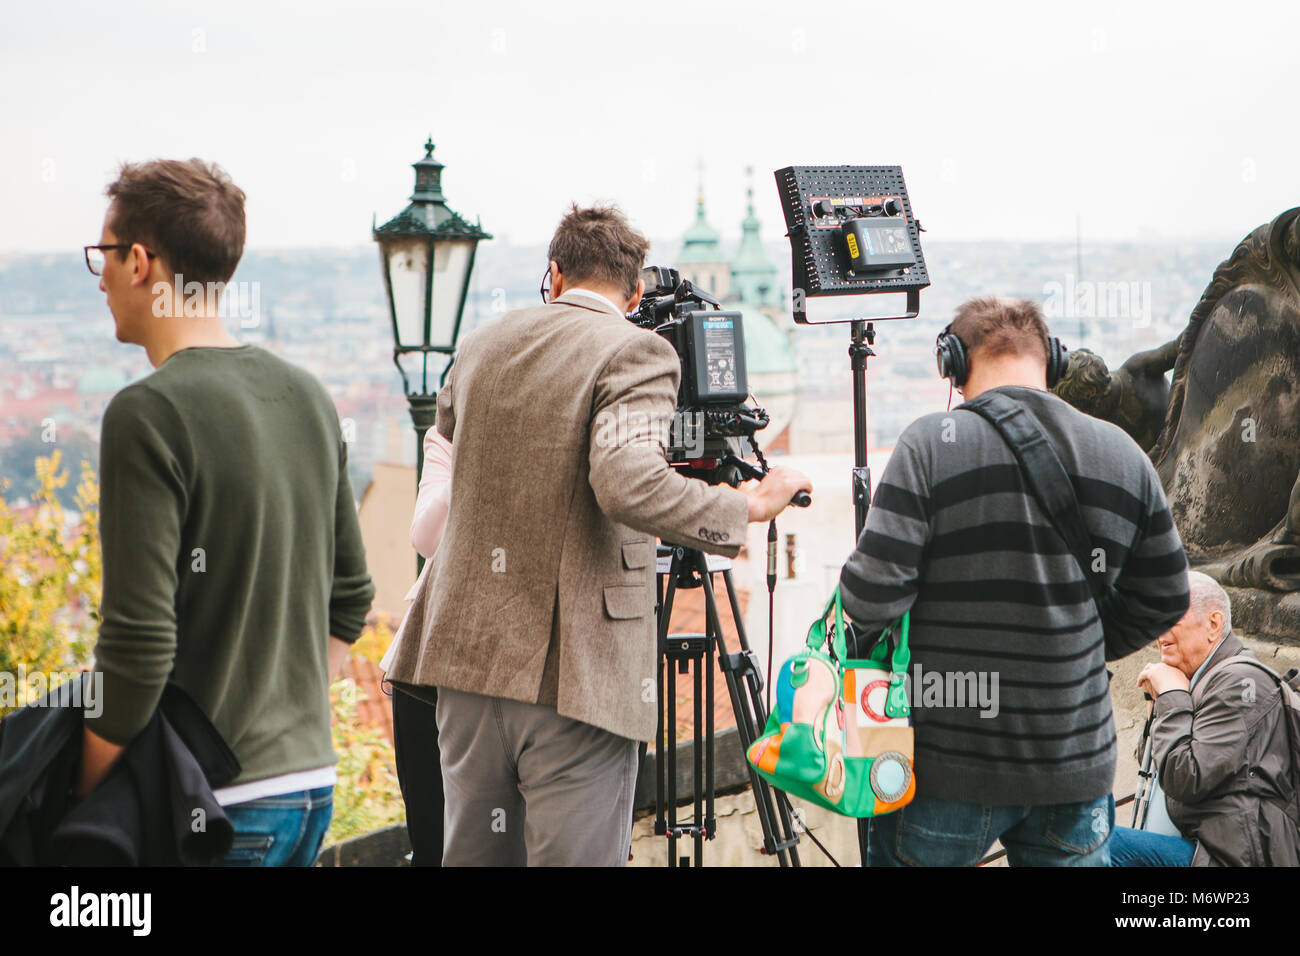 Prague, October 28, 2017: Team of operators shoot report next to the Prague Castle - Stock Image